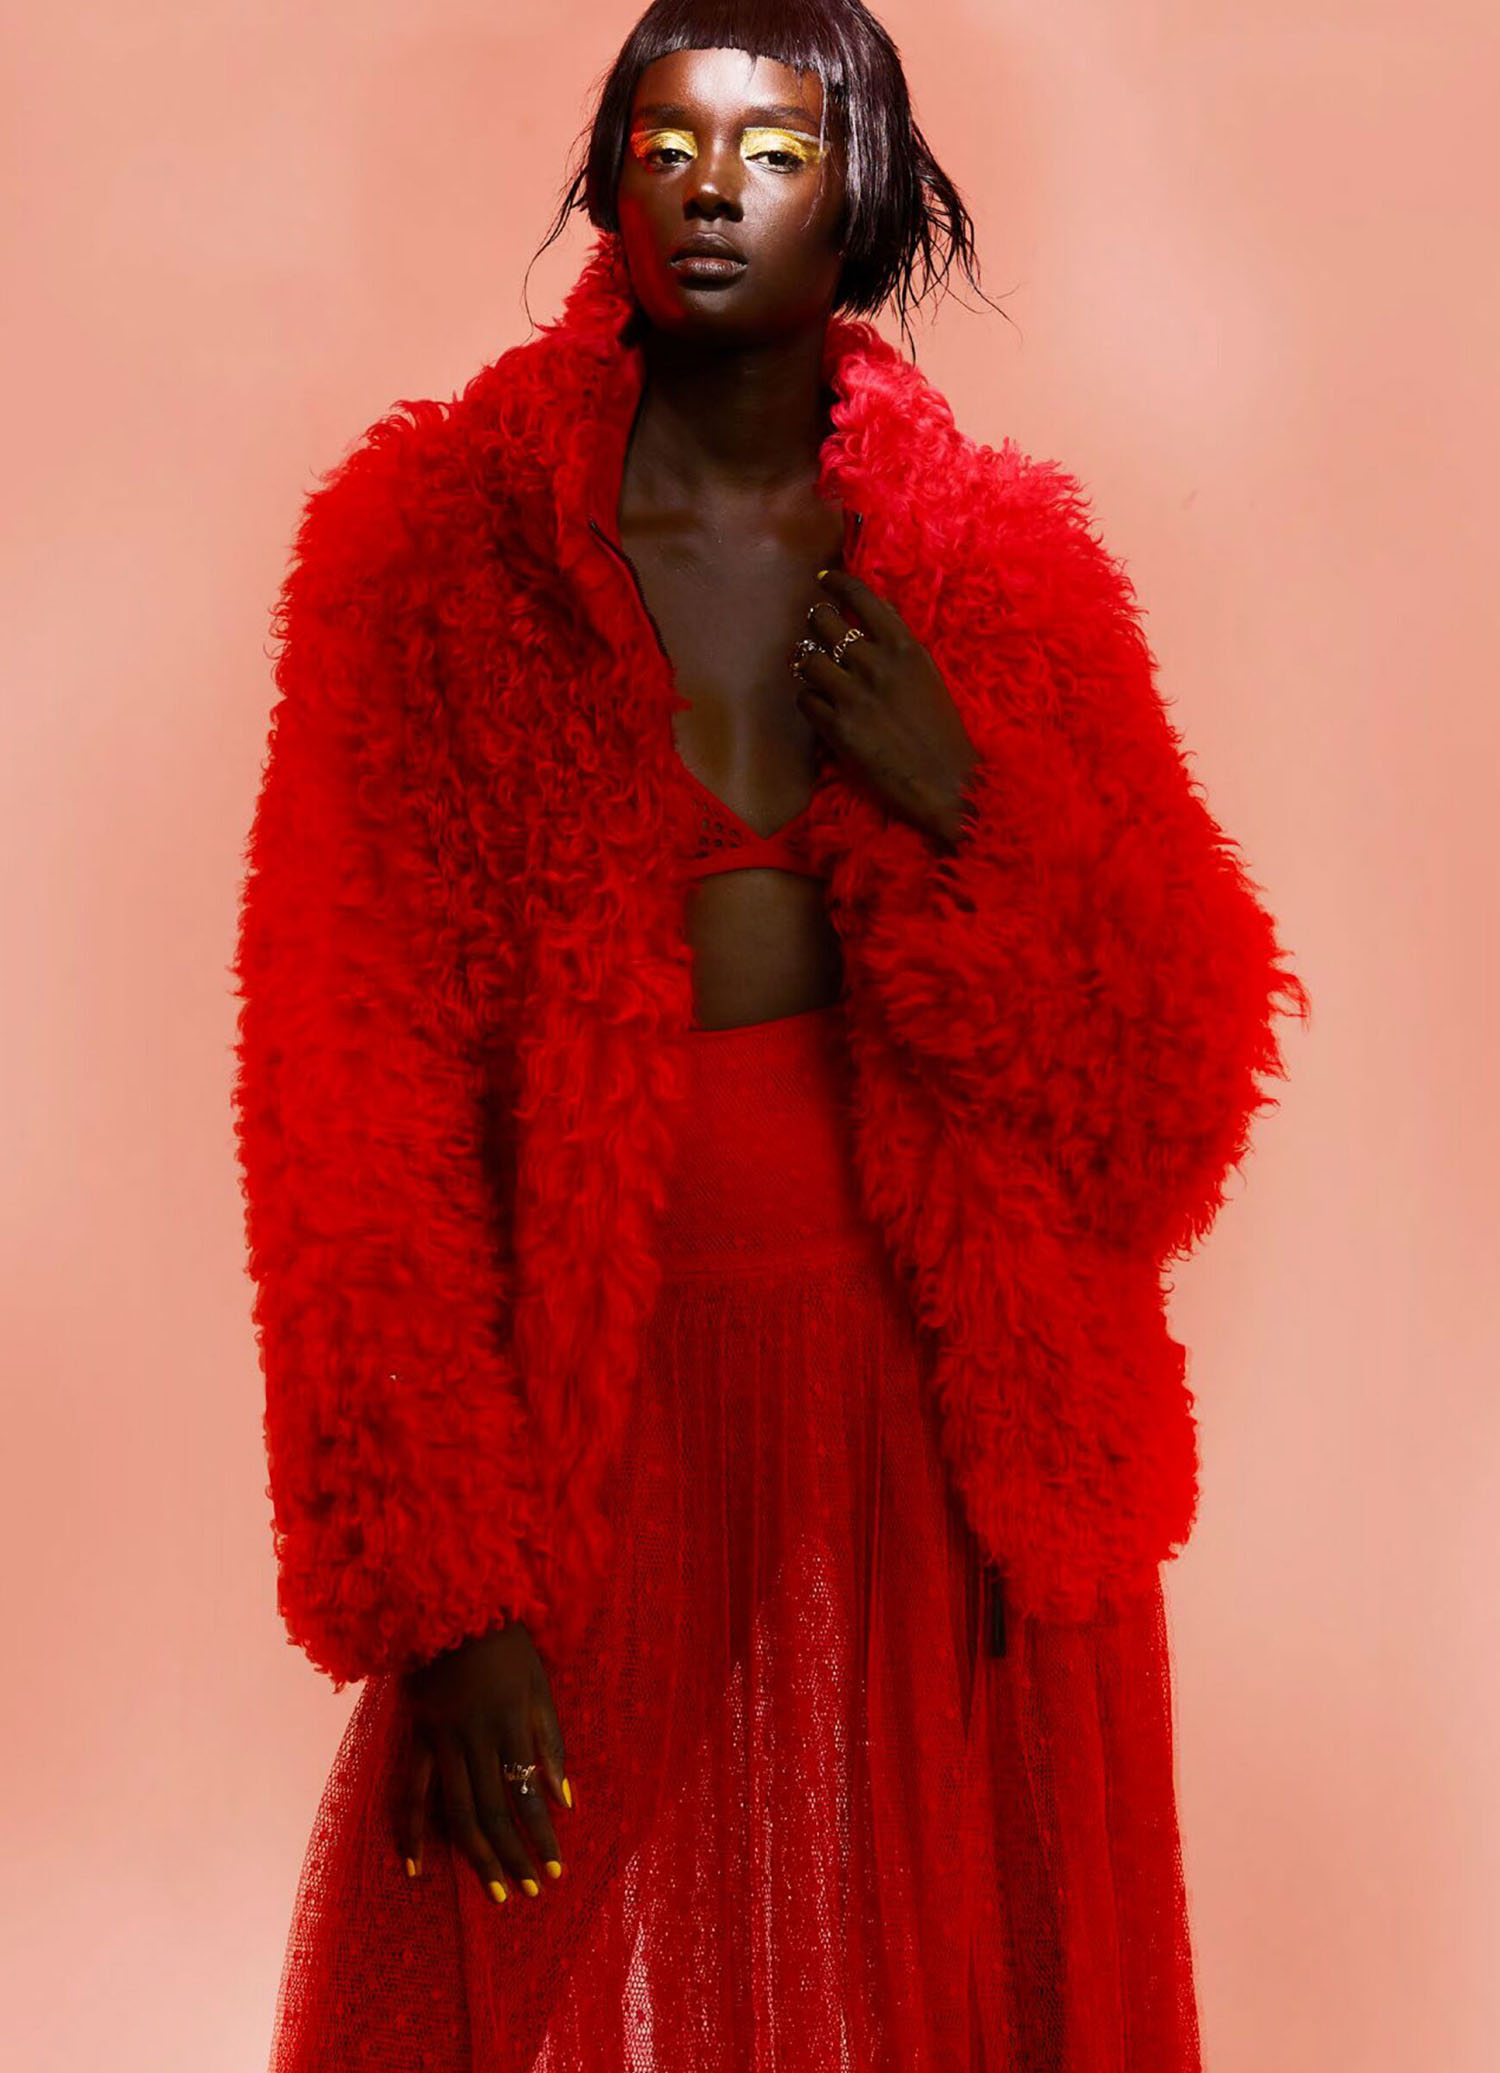 Duckie Thot by Simon Eeles for Marie Claire Australia July 2021